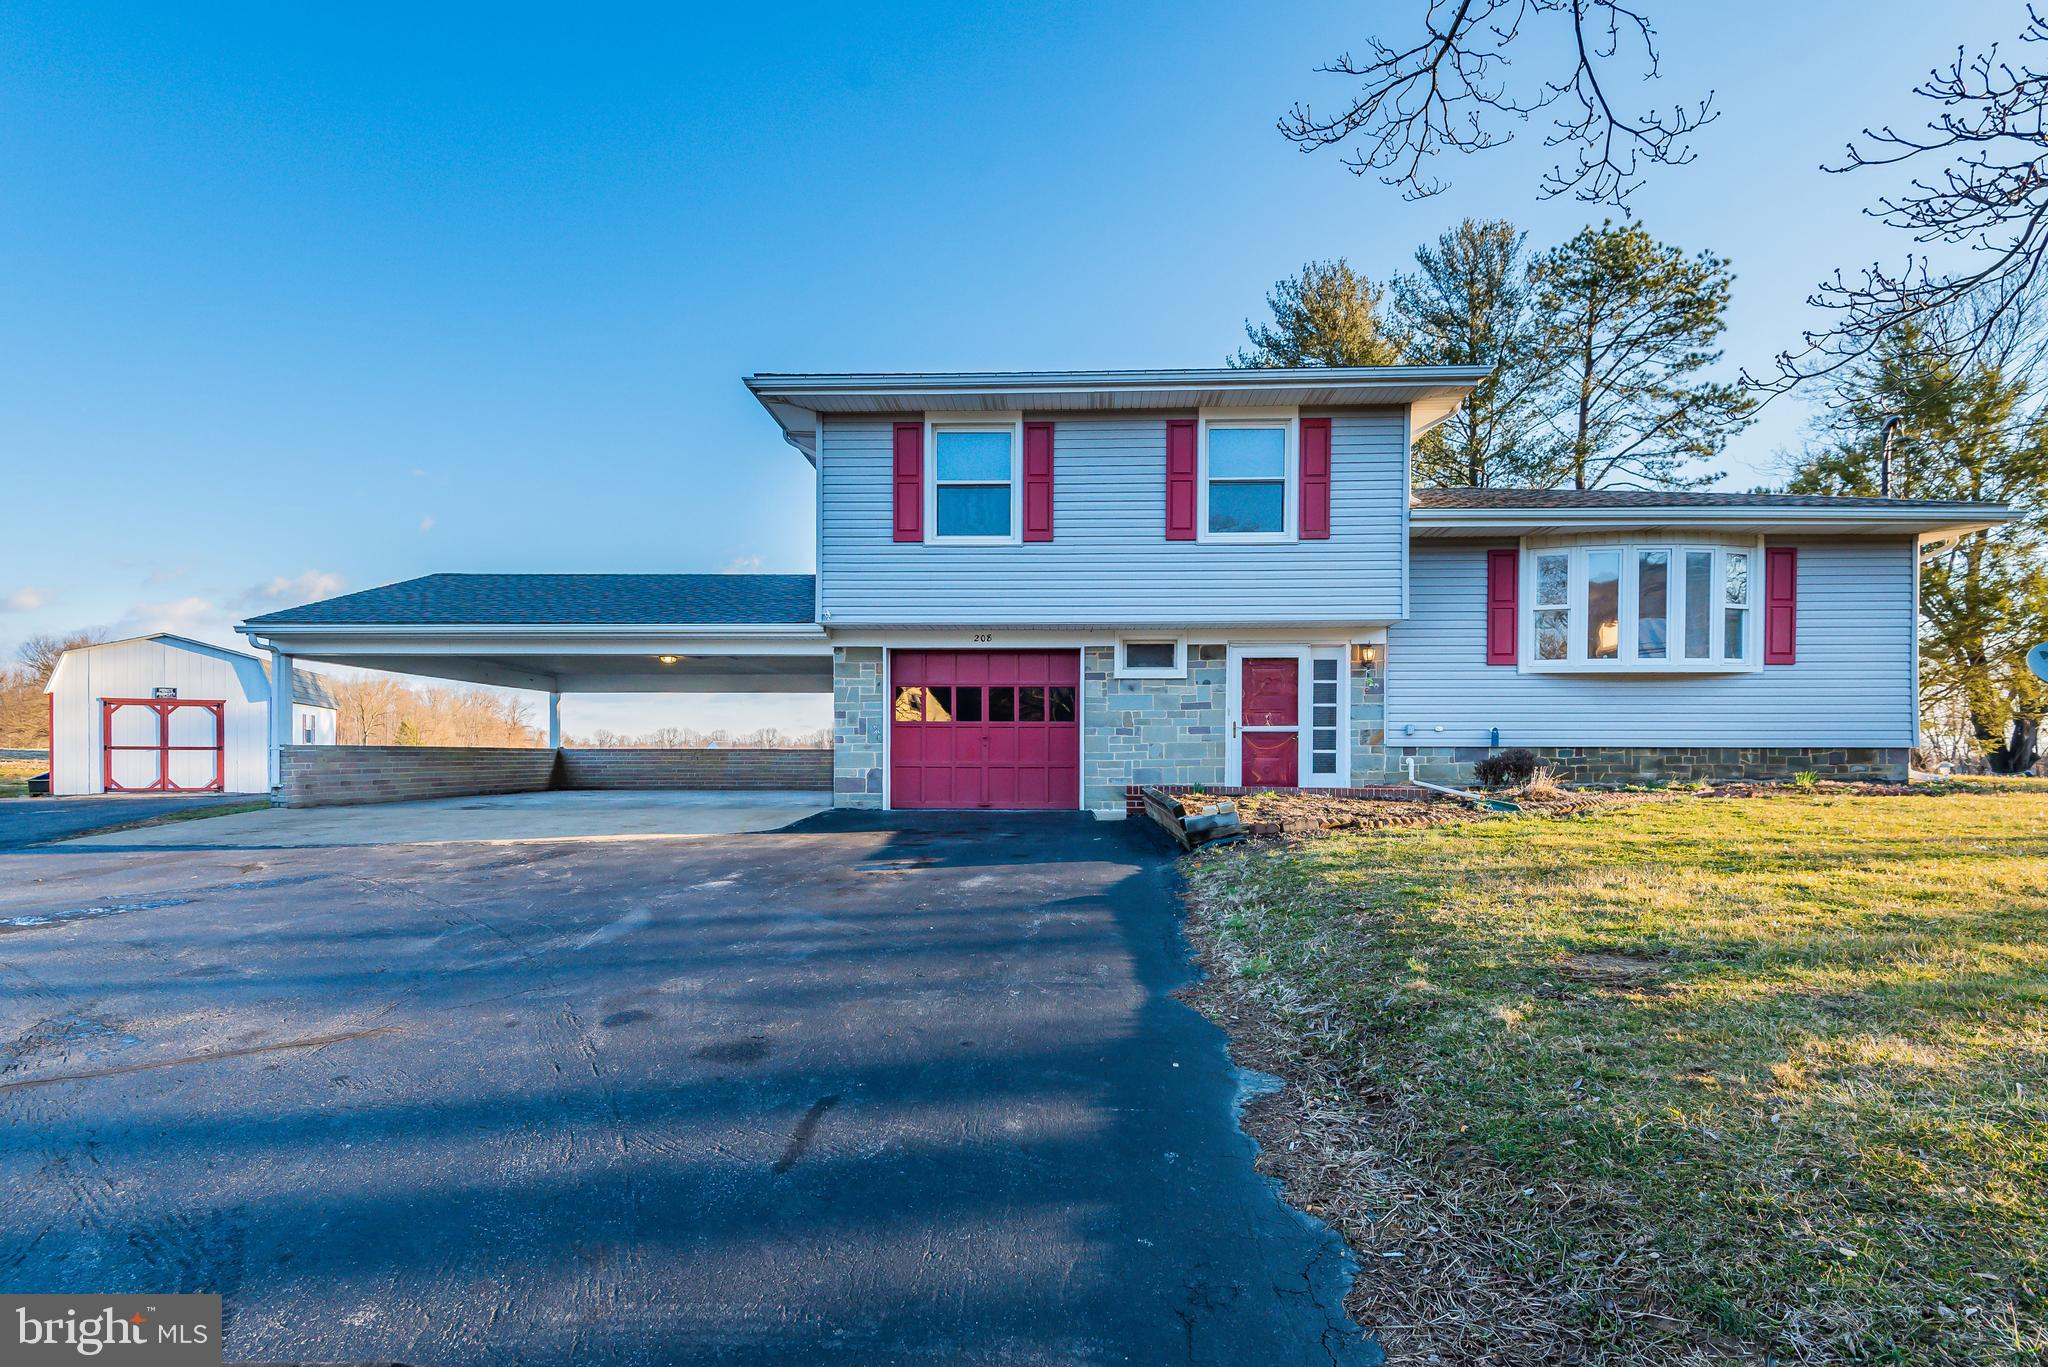 208 W PINE STREET, MOUNT HOLLY SPRINGS, PA 17065